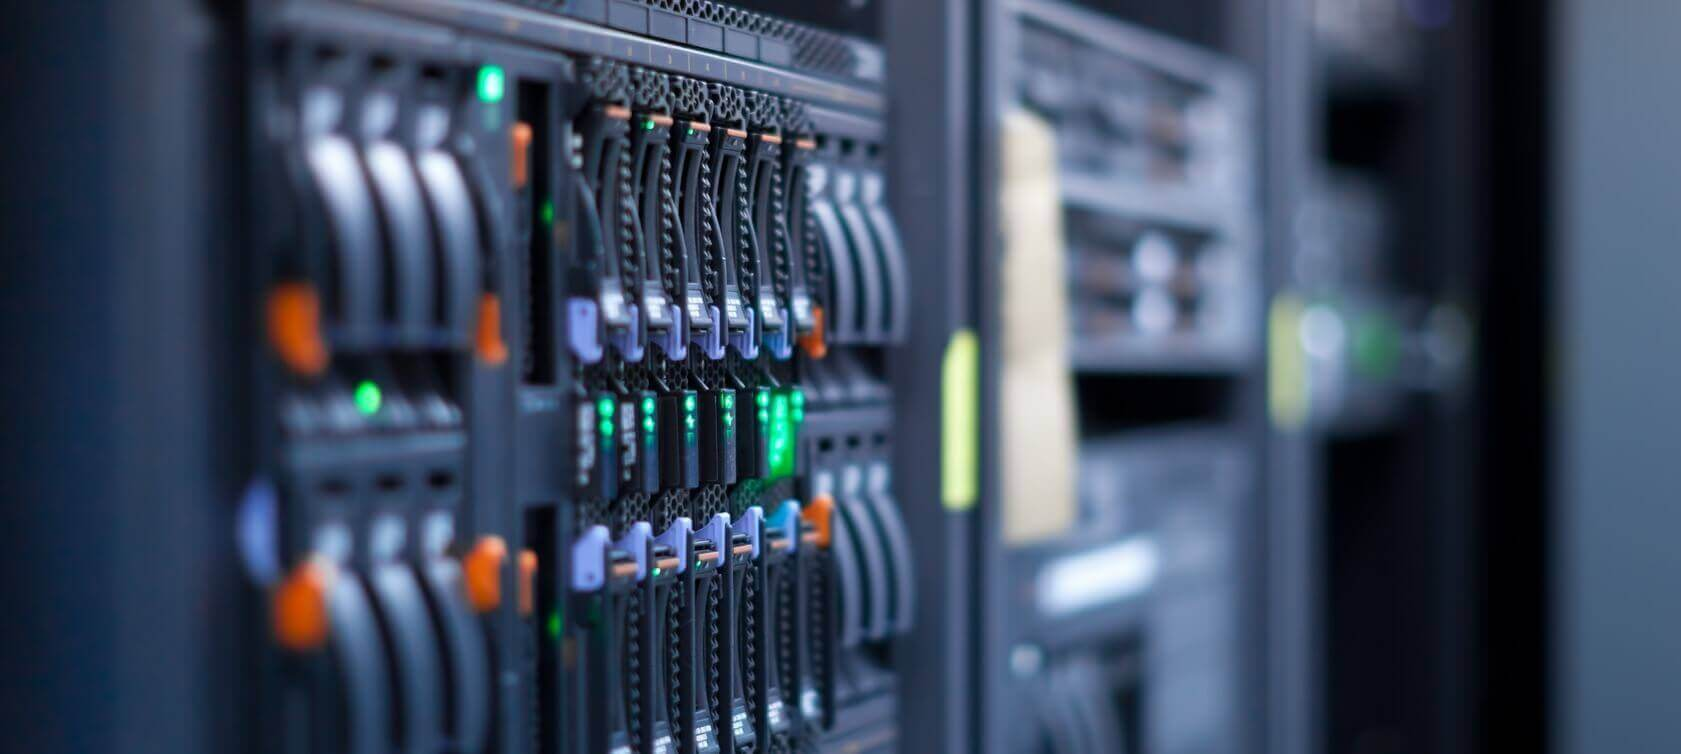 Protecting your Data when Web Hosting Services Disappear